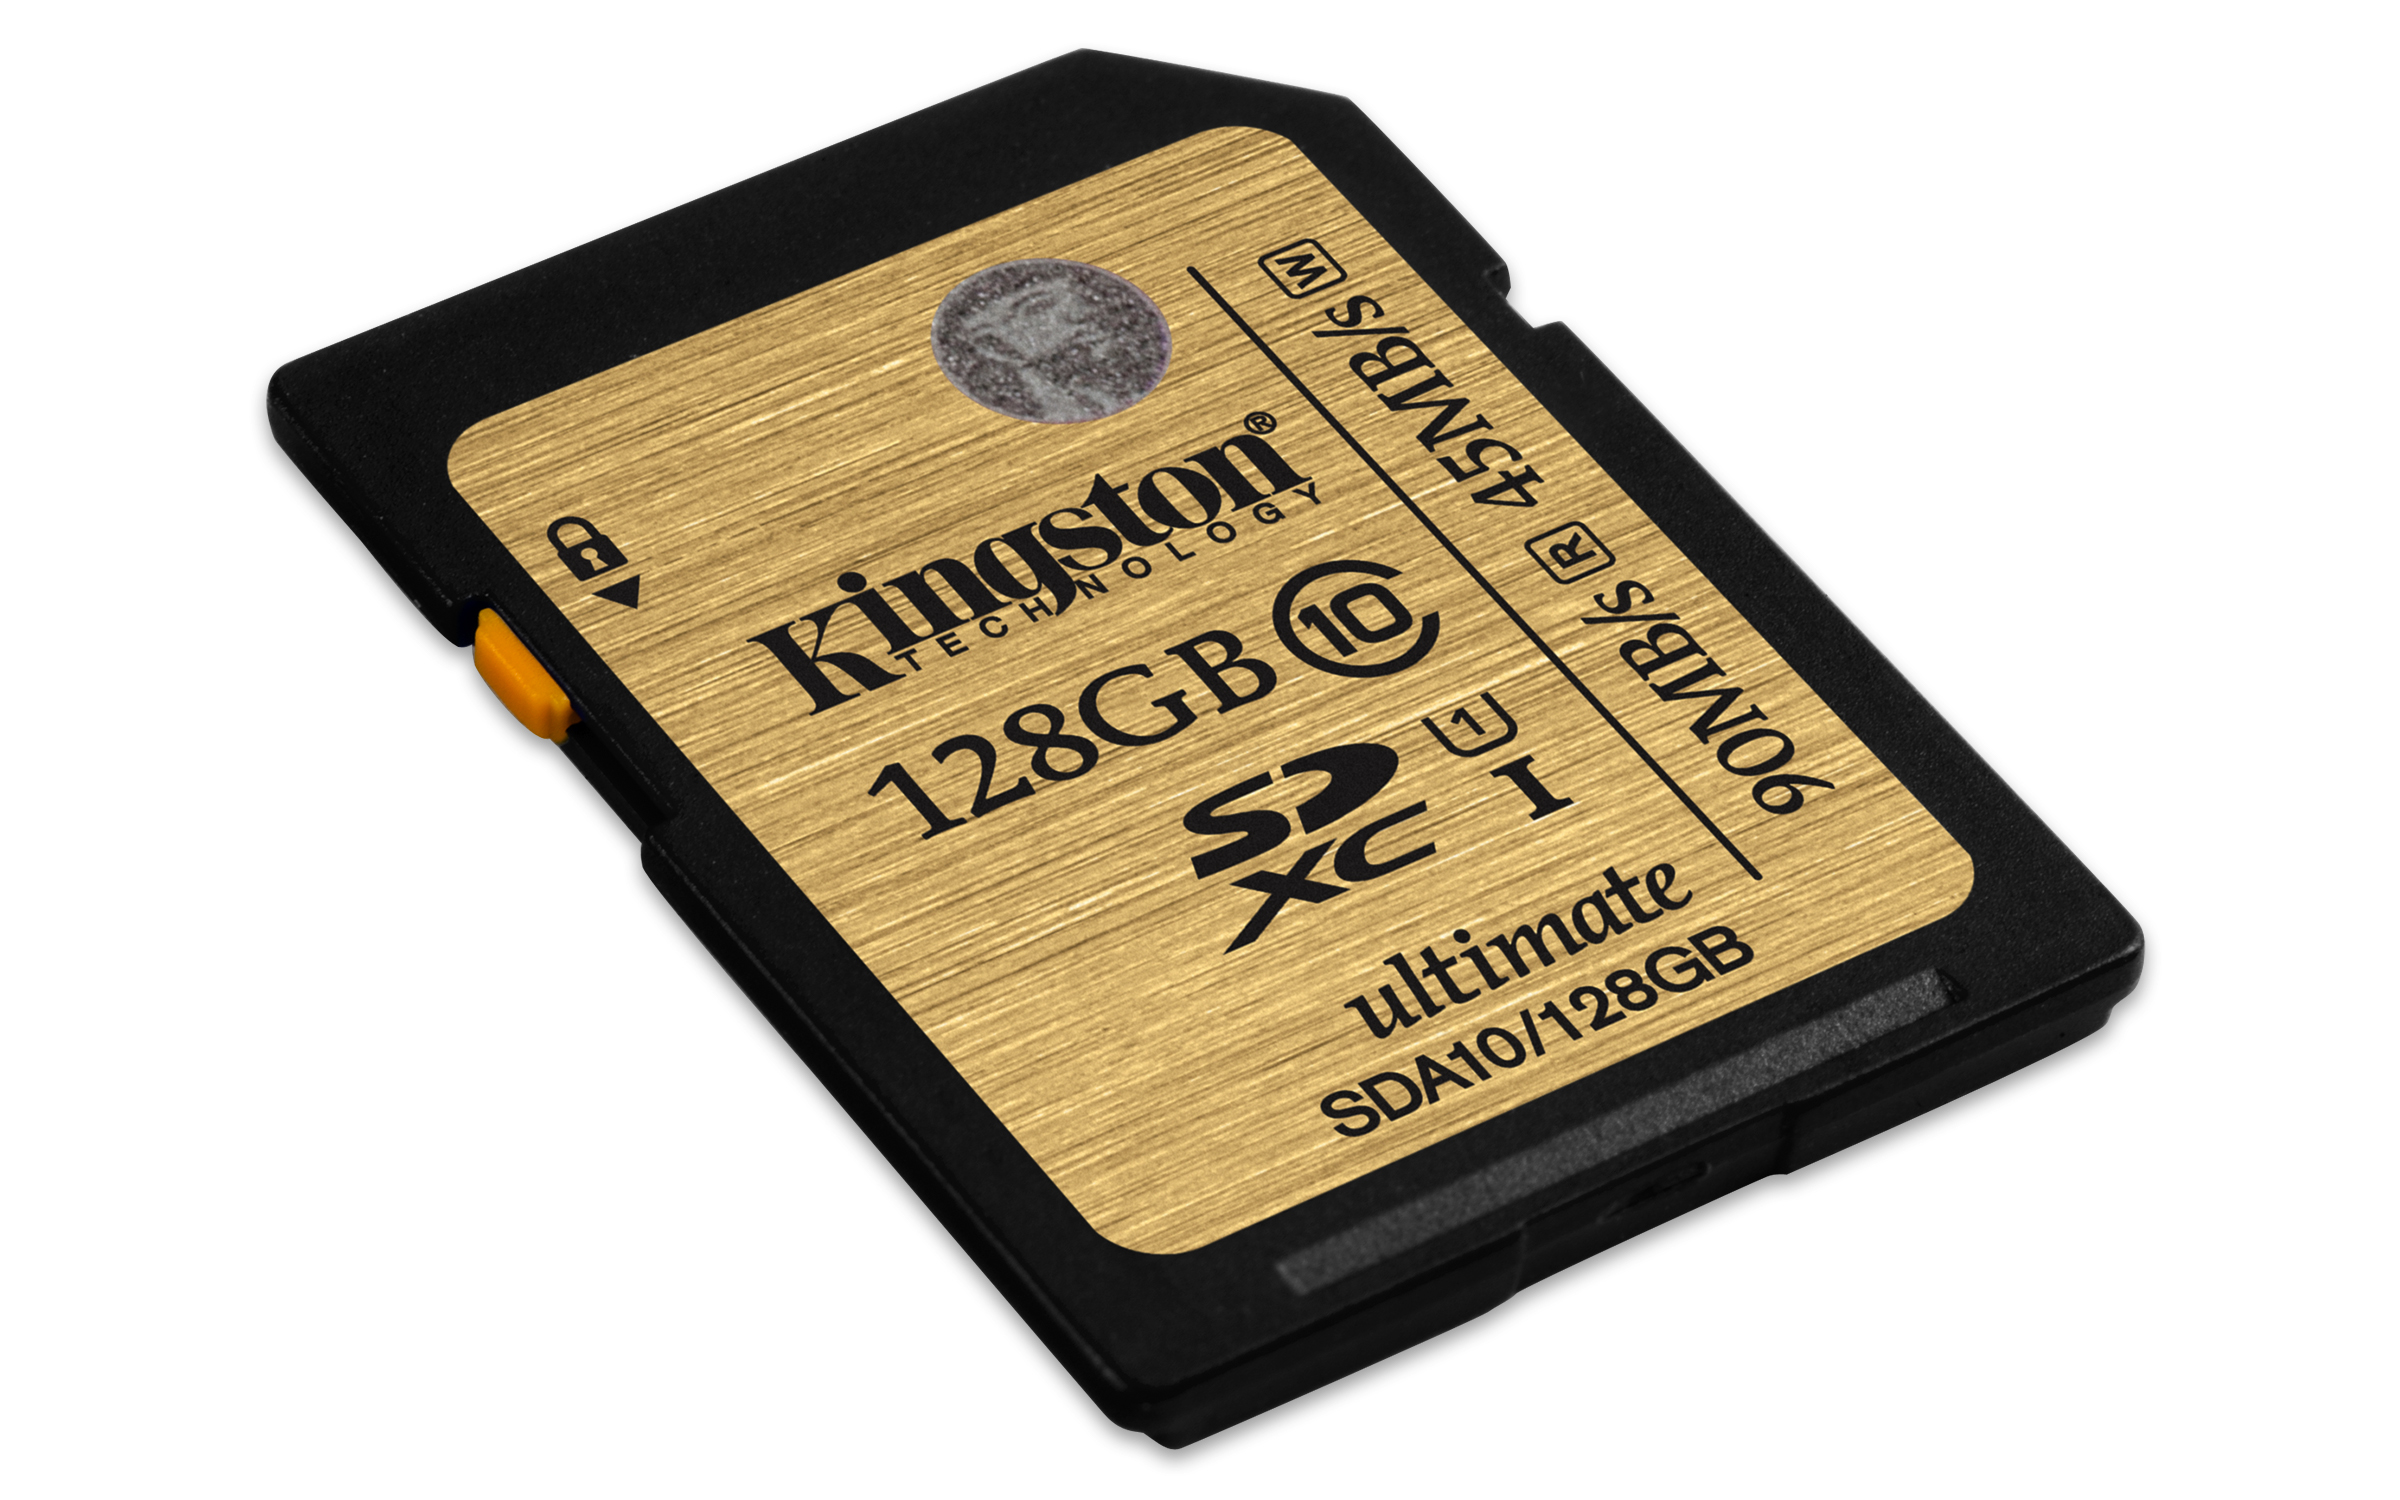 128GB SDXC Ultimate UHS-I Kingston class 10